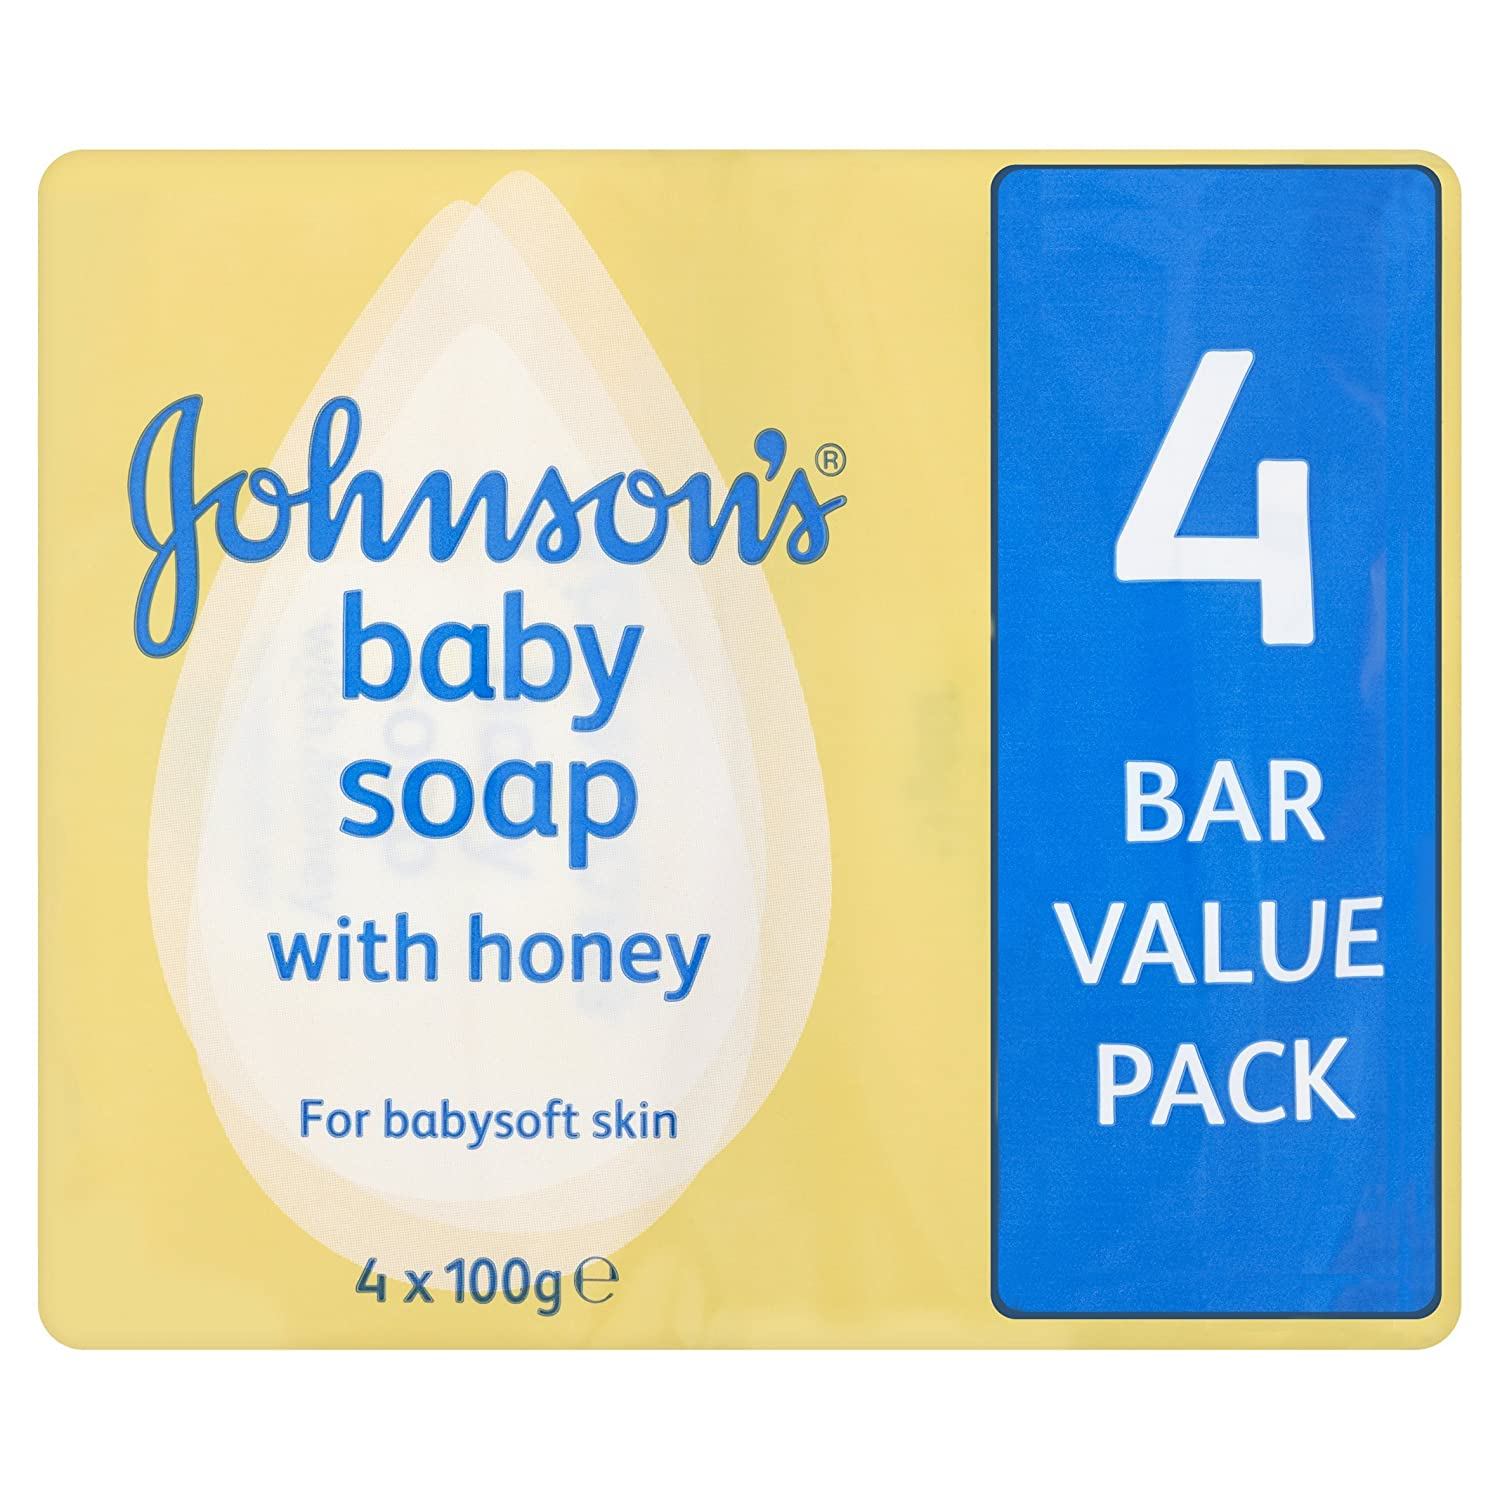 Johnsons baby soap Honey with baby lotion 4 pack Healthcenter 001375